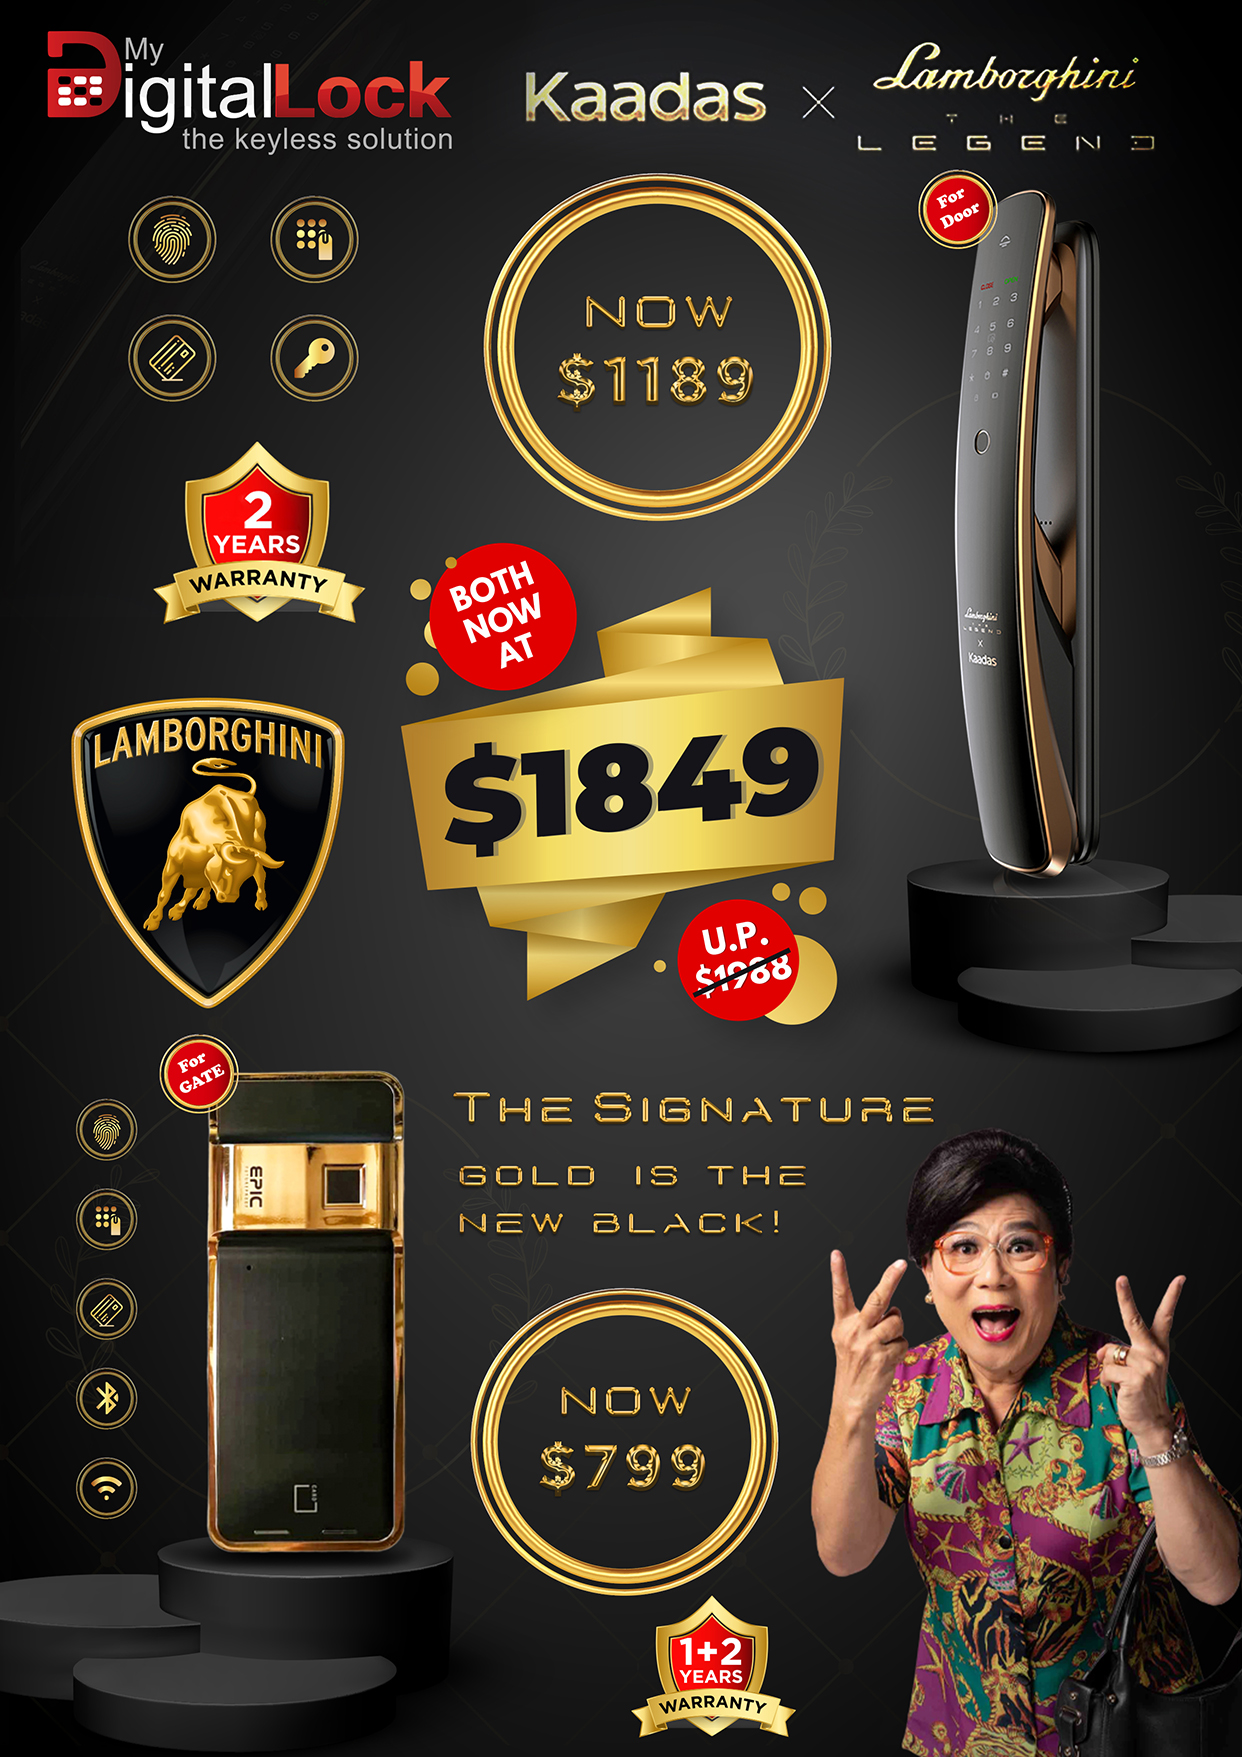 My Digital Lock Lamborghini Promotional Epic 24k